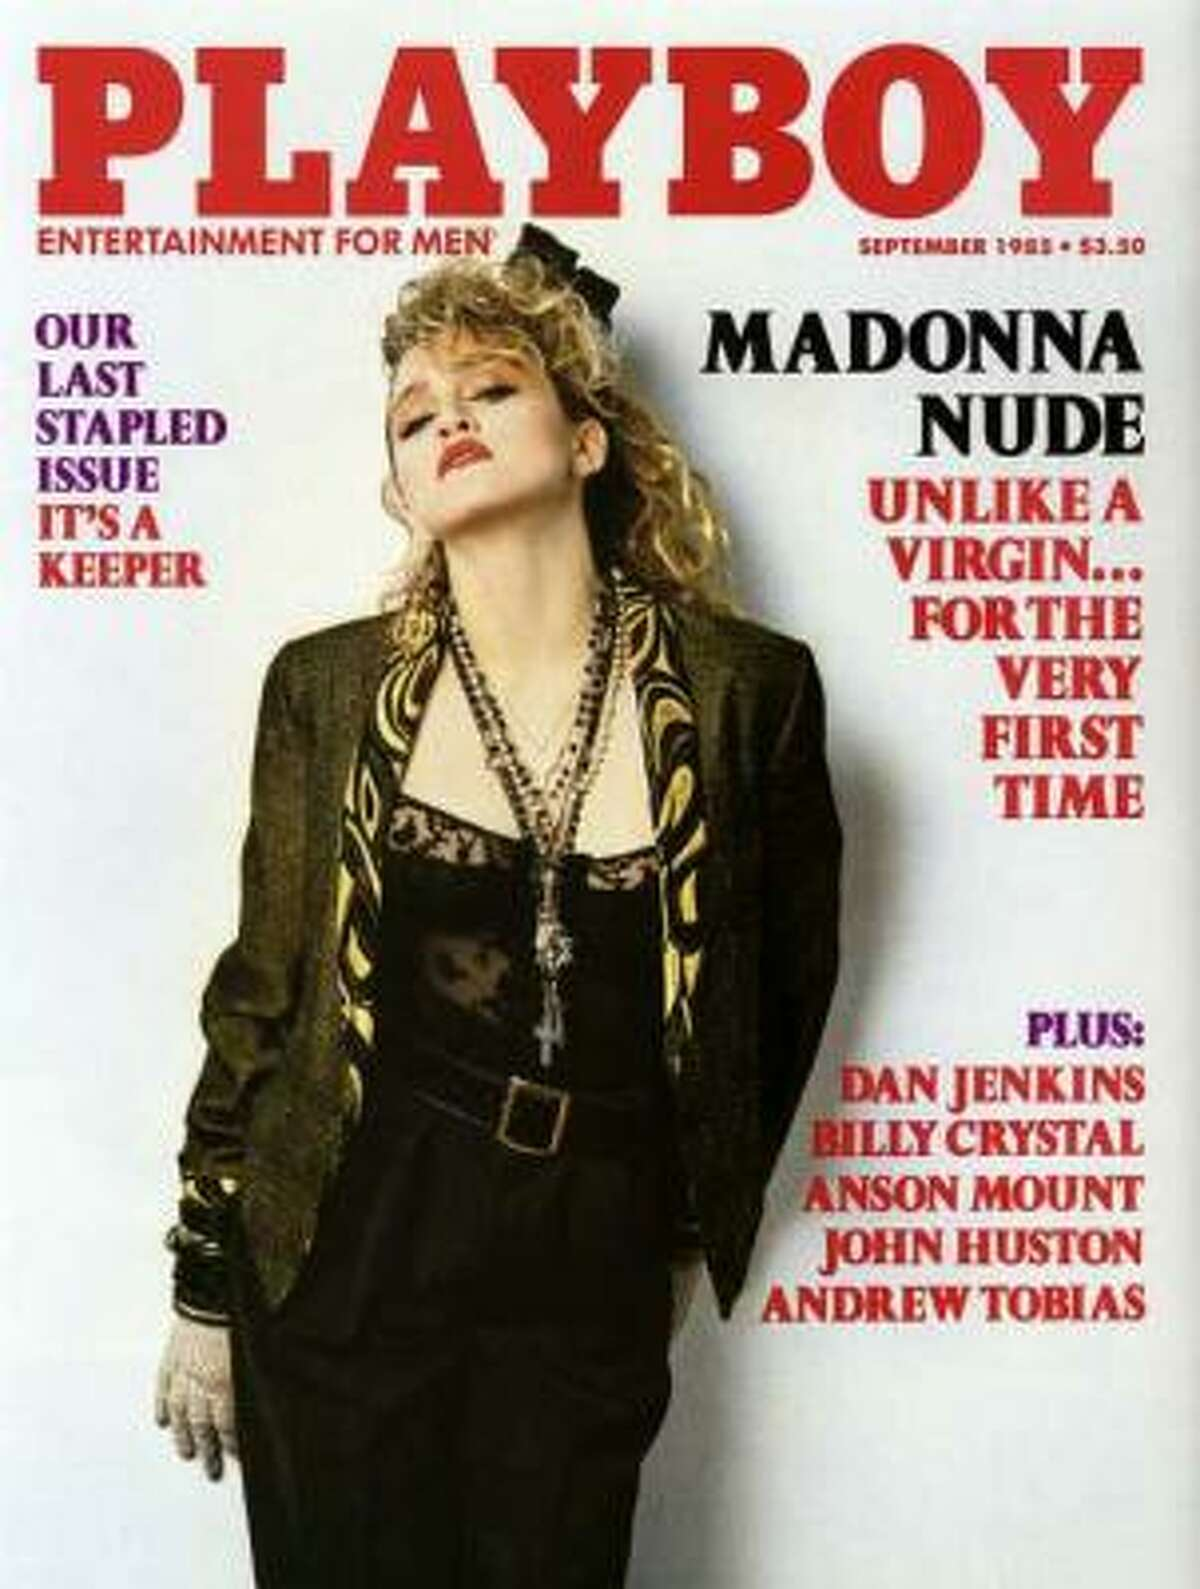 Madonna shortly after her successful release of